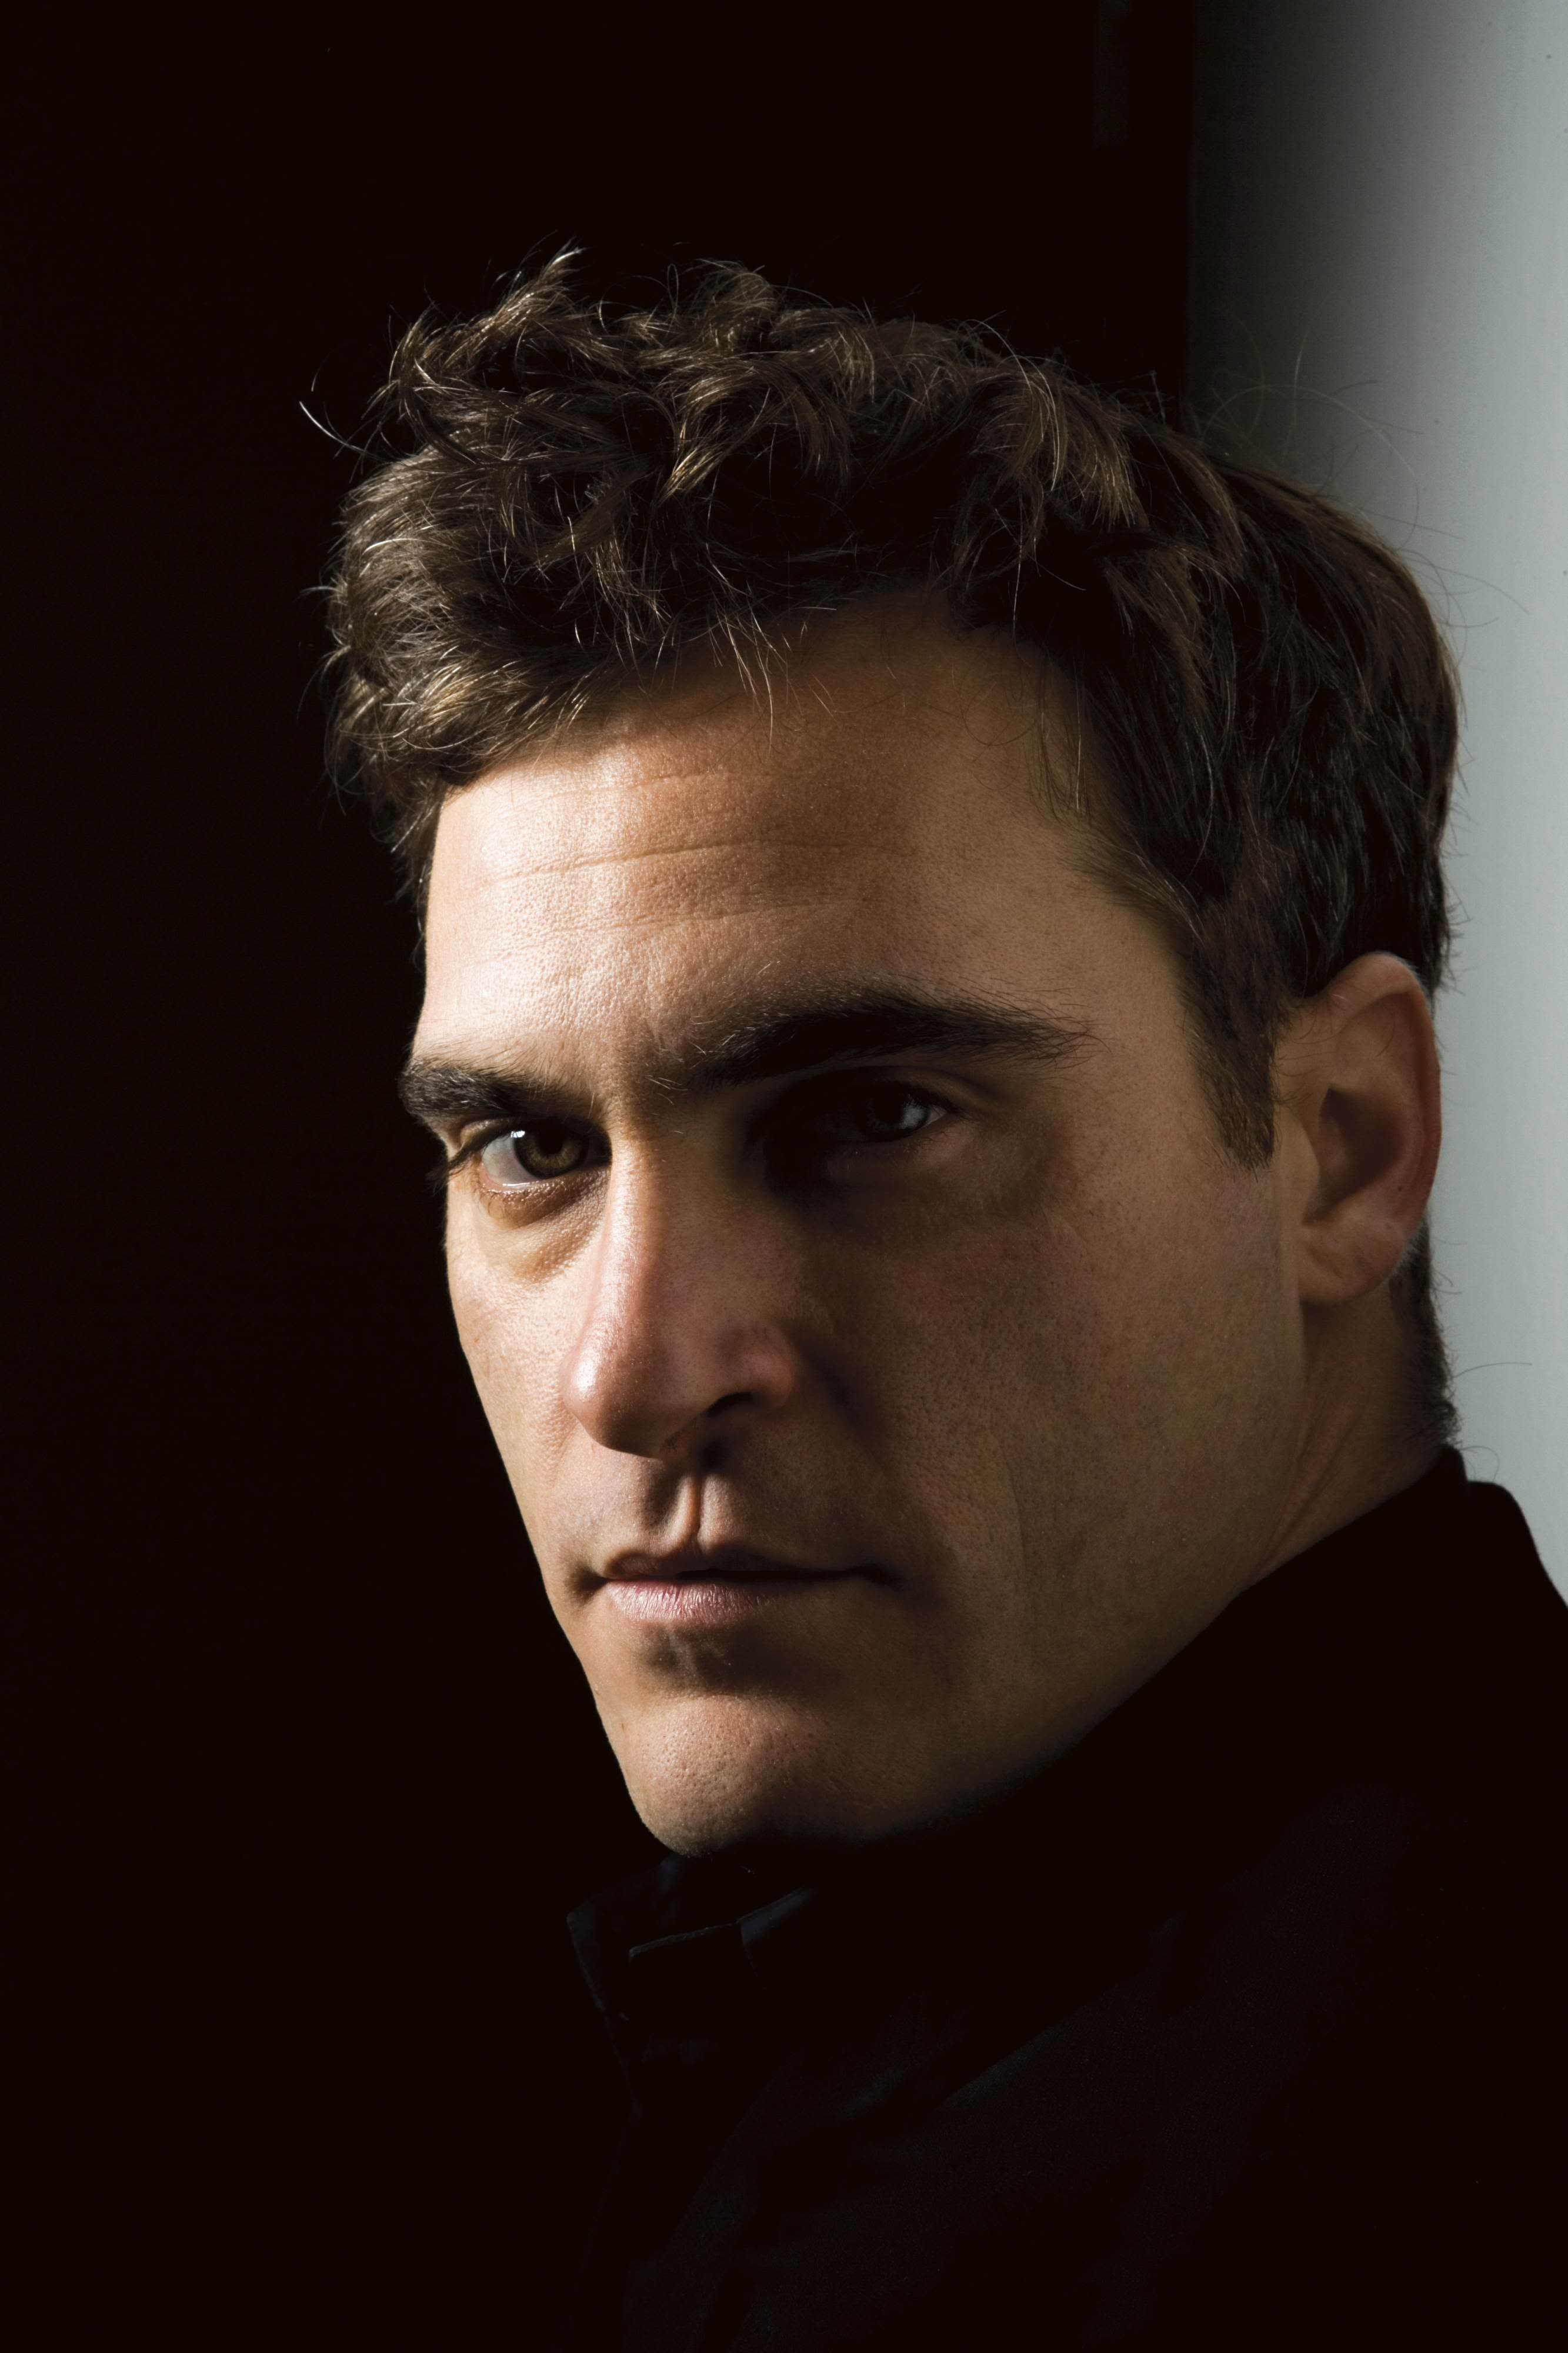 Joaquin Phoenix For mobile